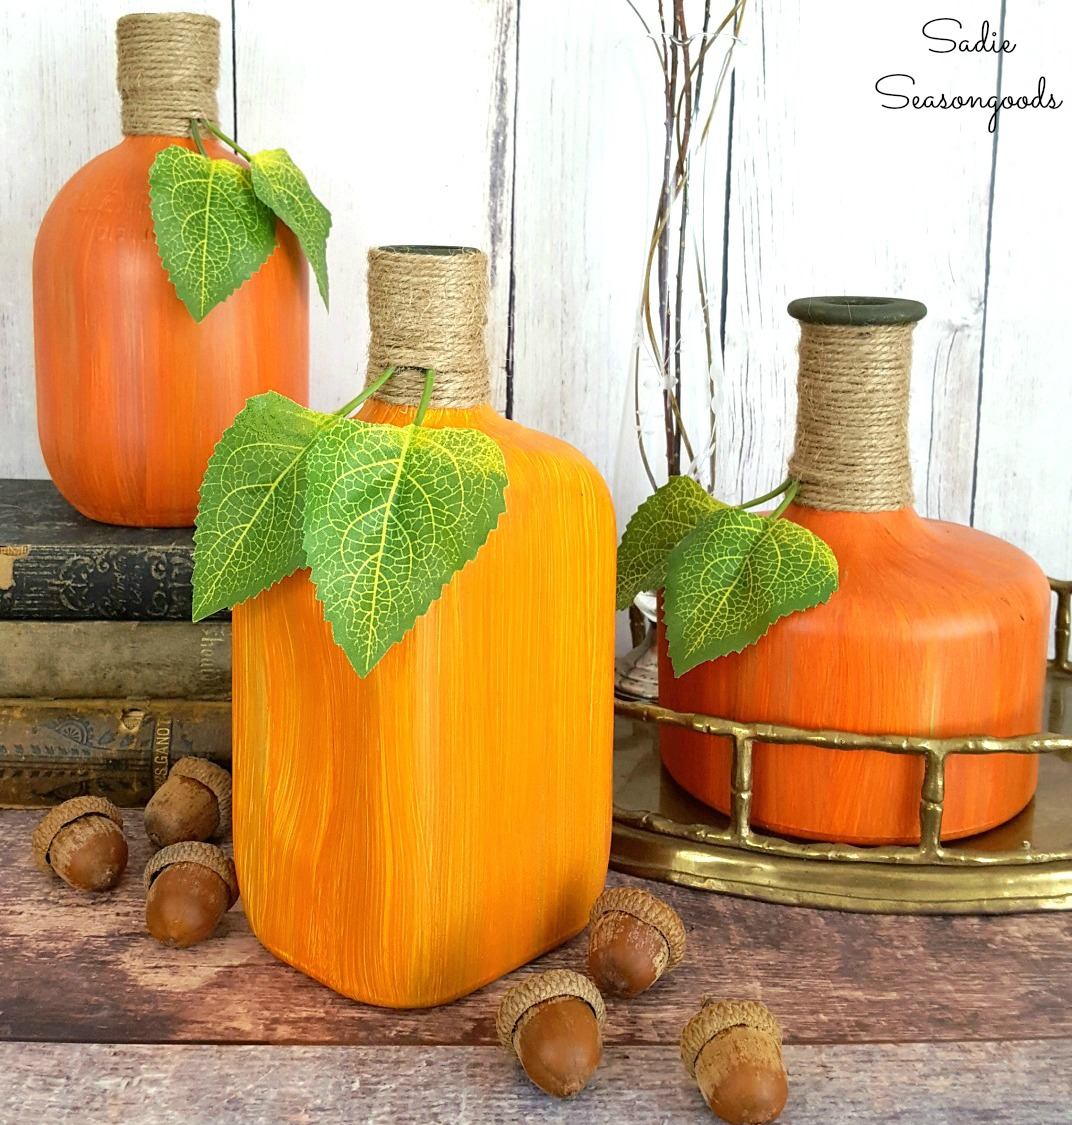 Up-cycled bottle fall pumpkins and gourds by Sadie Seasongoods, featured on Funky Junk Interiors